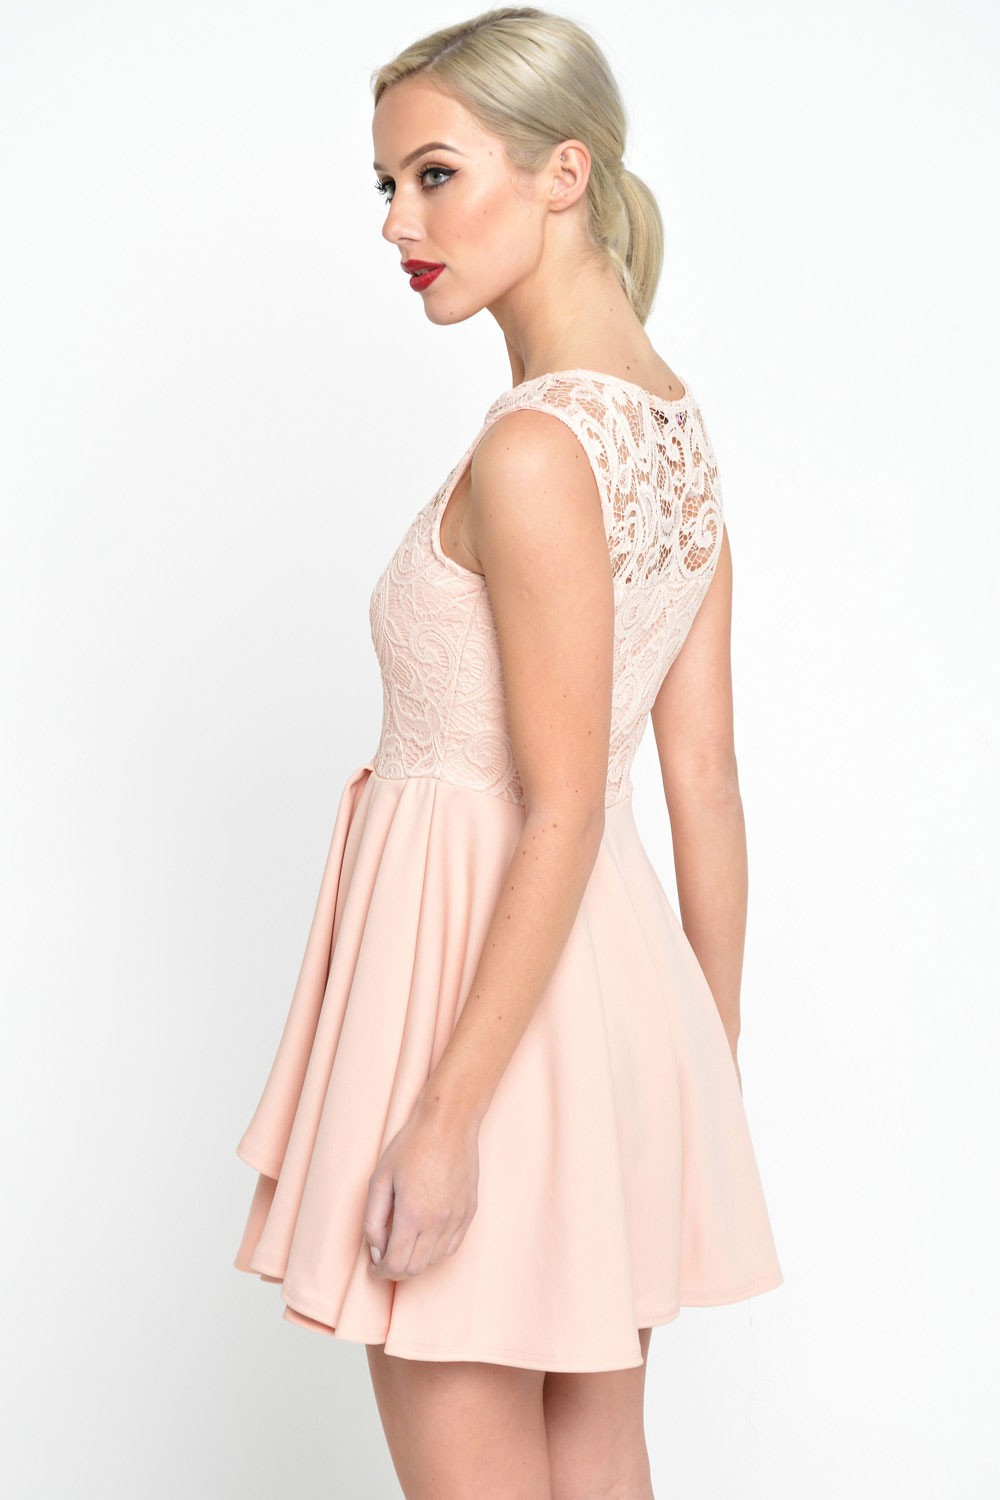 Tilly Lace Top Skater Dress in Peach